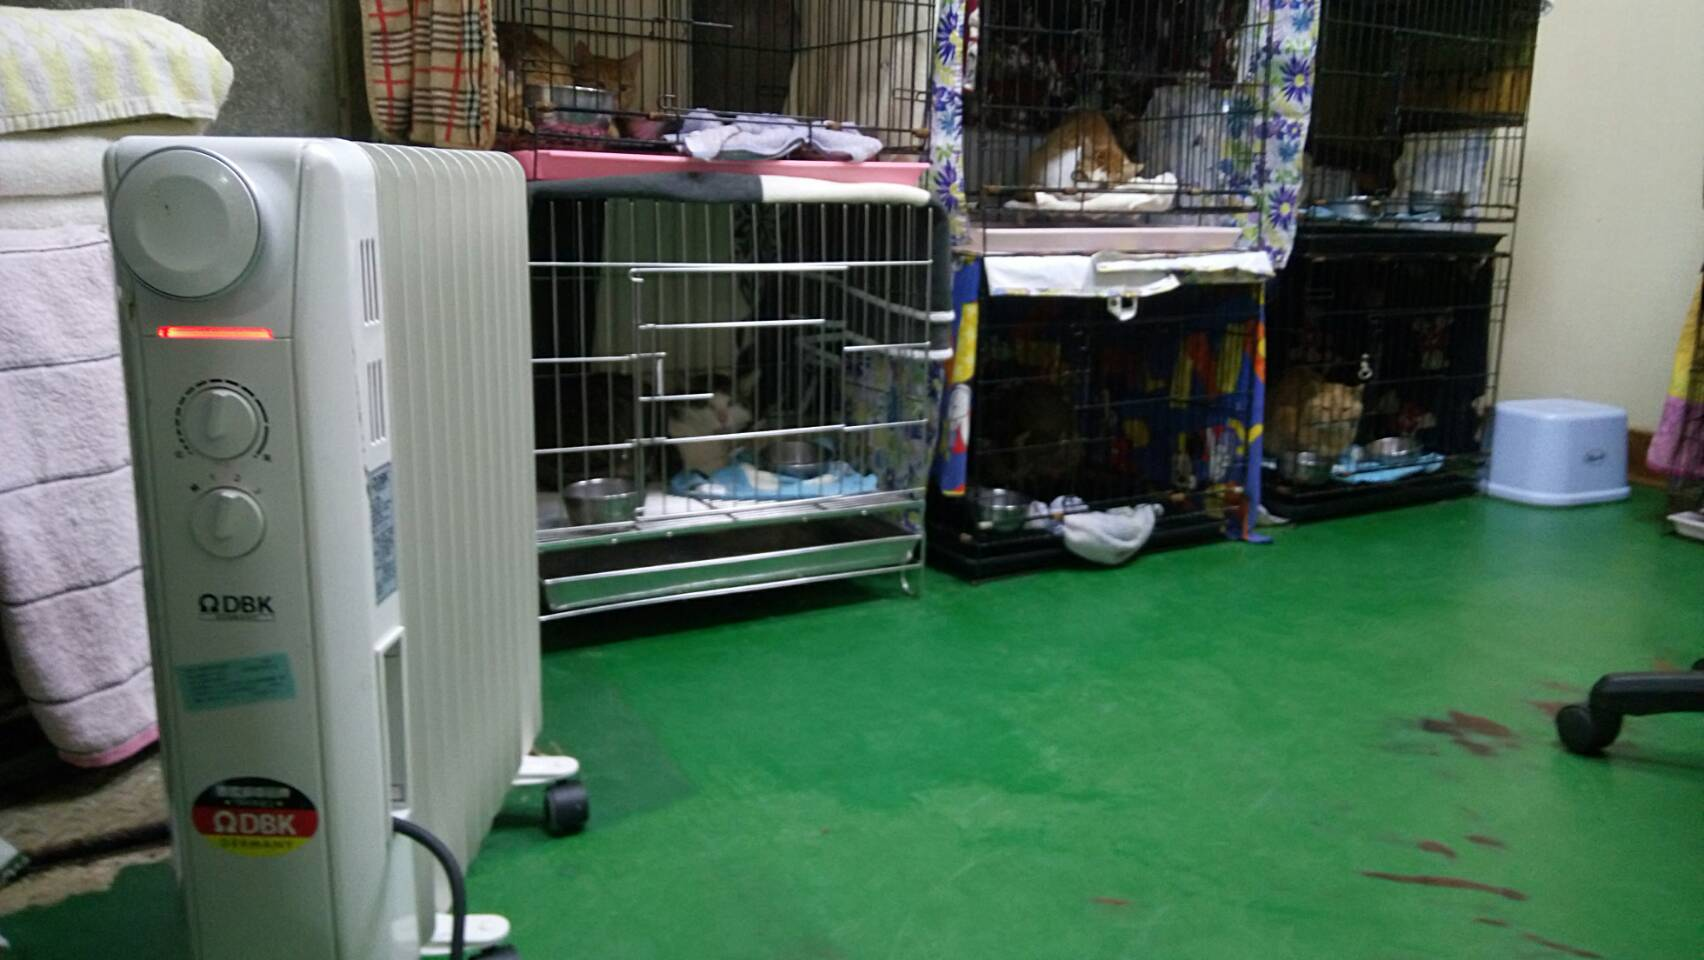 A heater warming the cats and dogs at the animal shelter